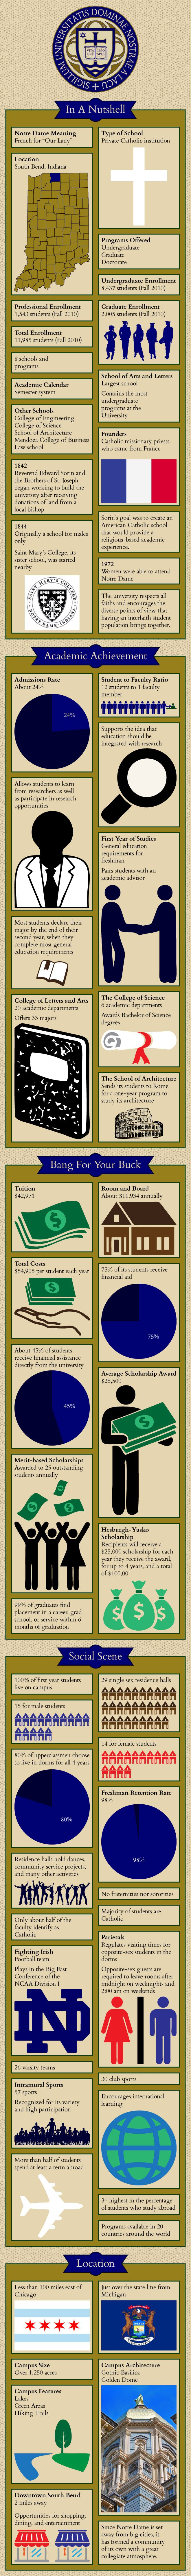 University of Notre Dame Infographic